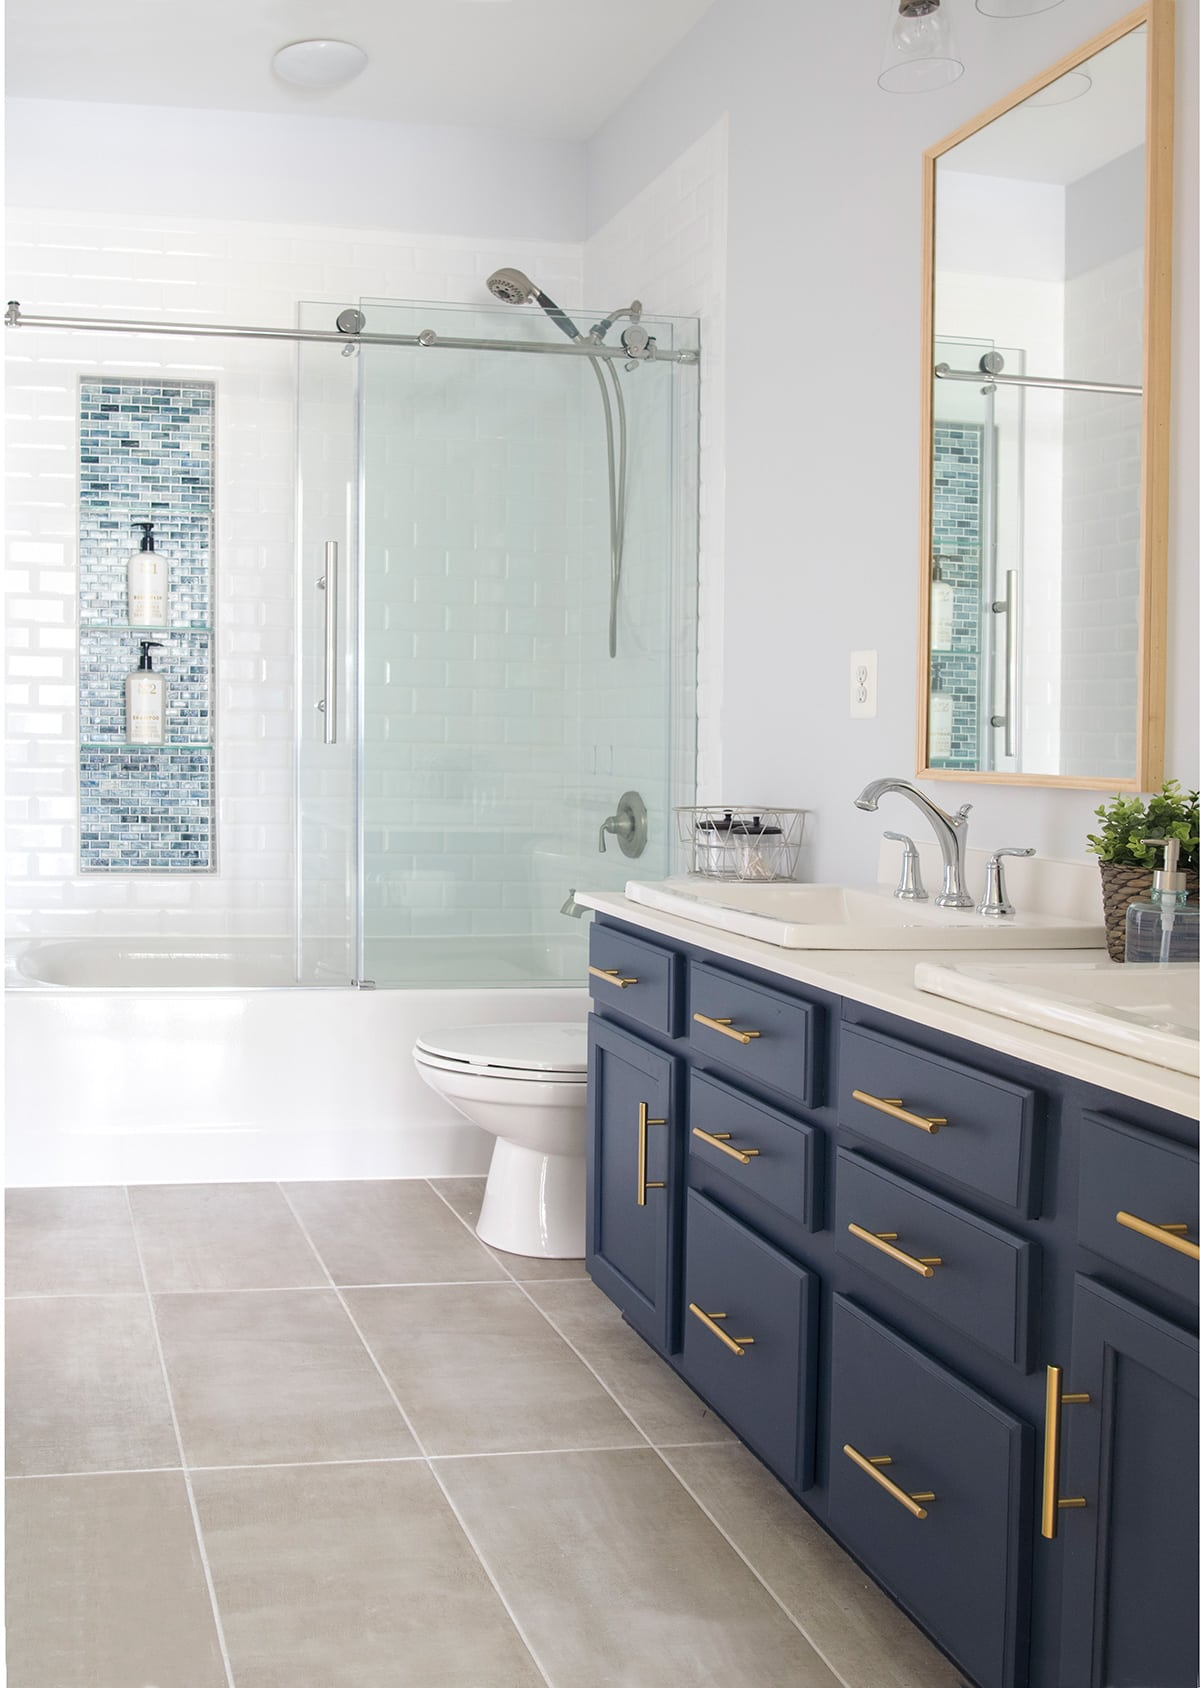 Complete DIY bathroom renovation from Craving Some Creativity! This modern classic bathroom design with navy blue vanity, subway tile shower, large shower niche, and textured gray floor tile. is beautiful!